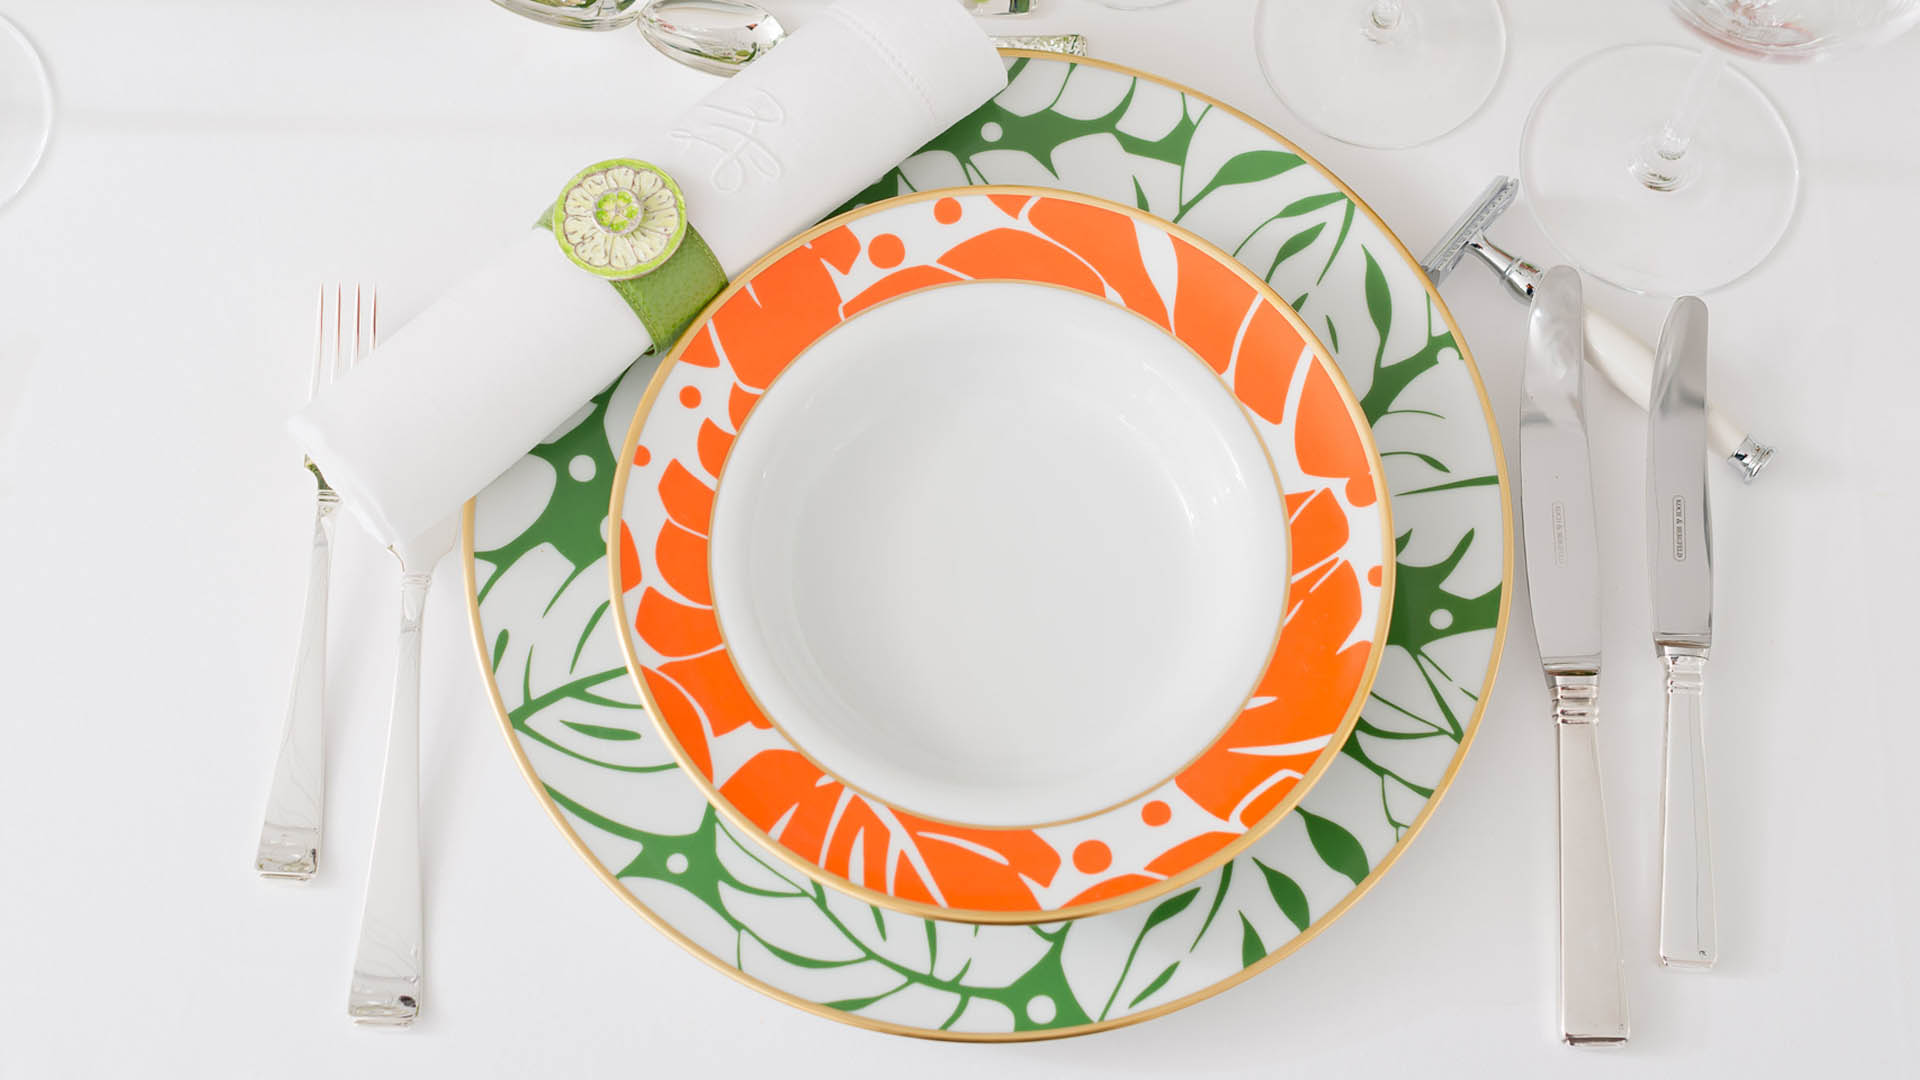 Table with dinner plates and colorful flowers